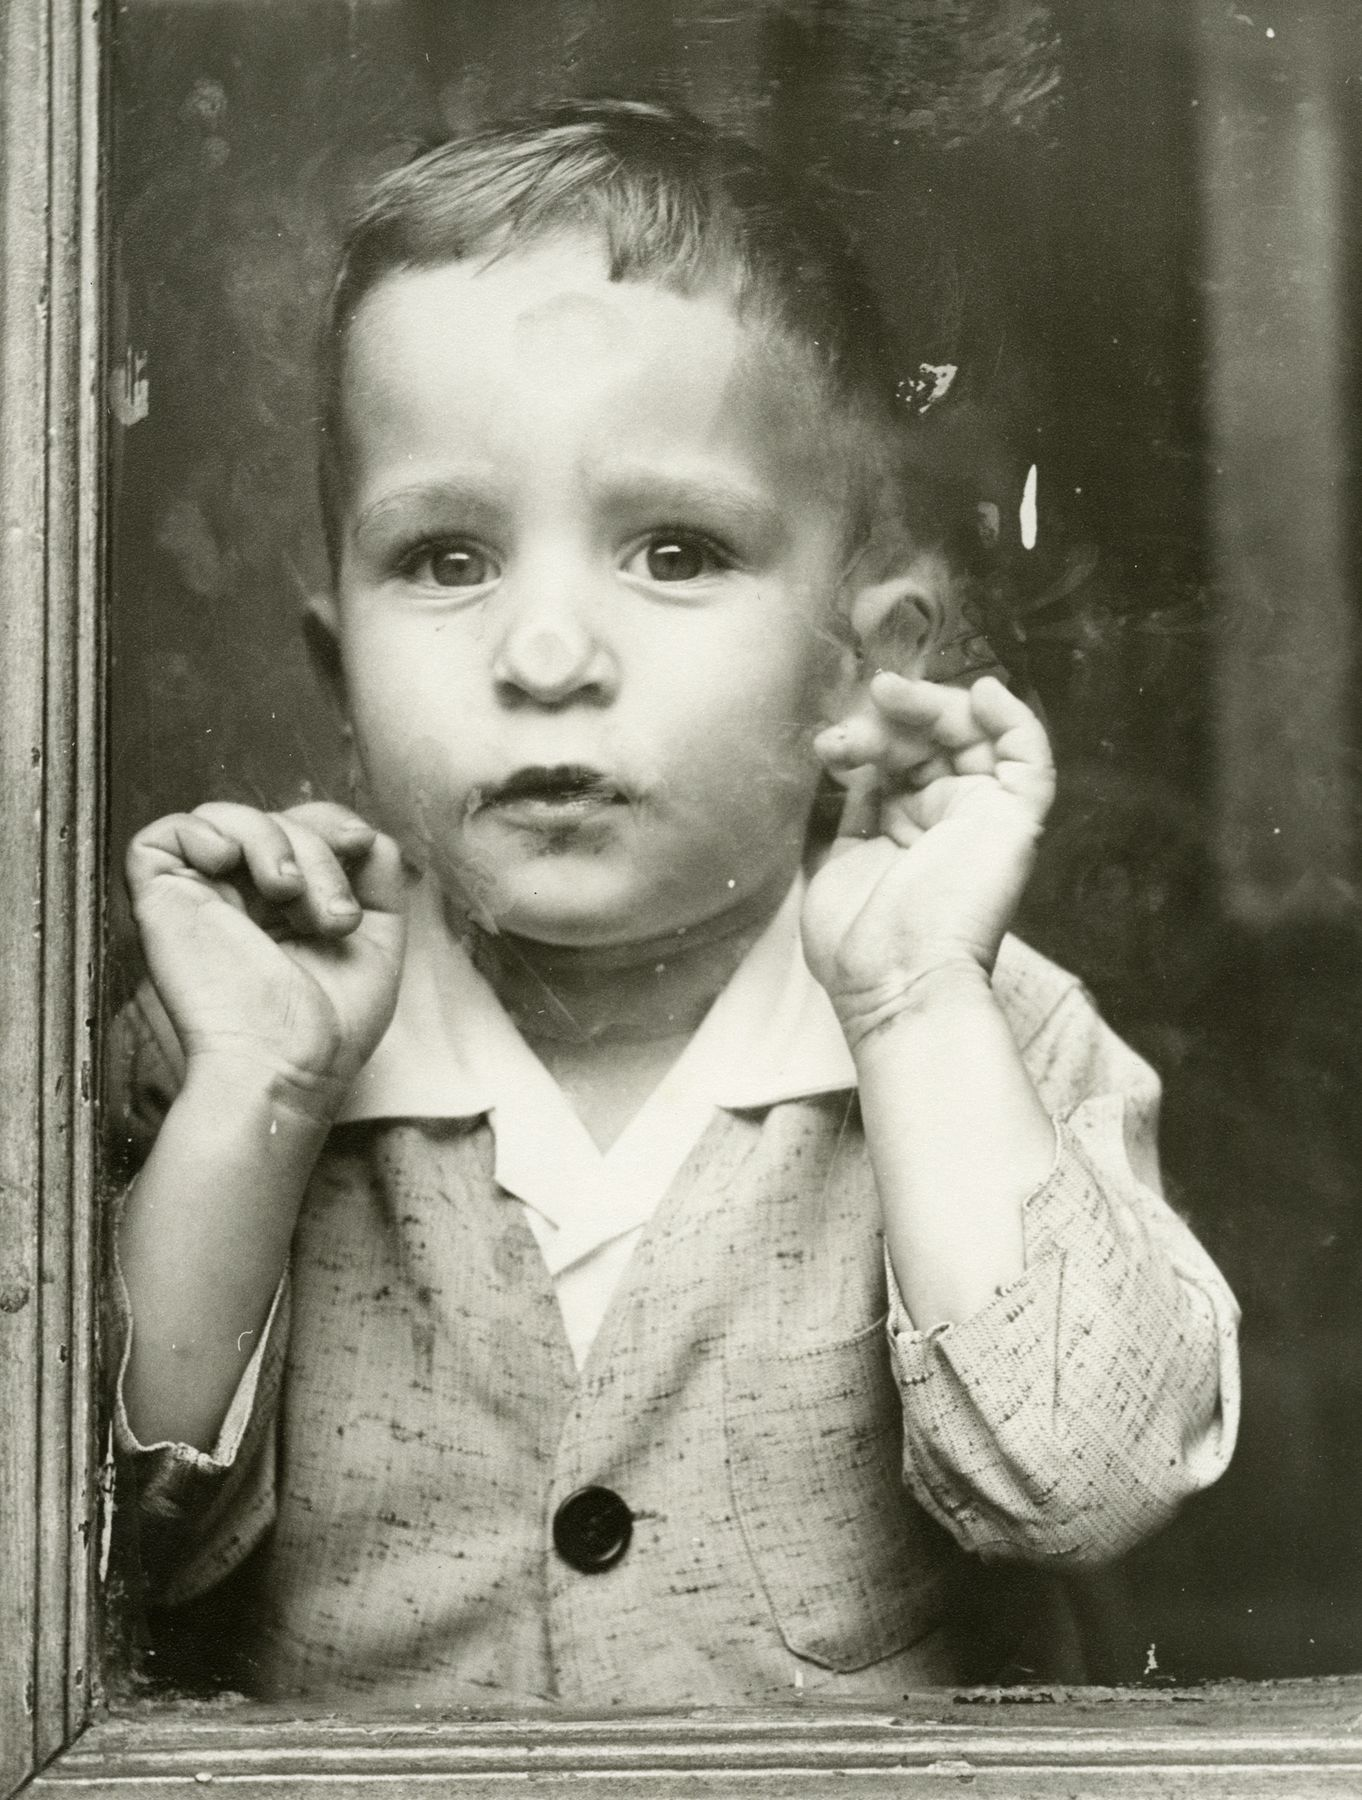 Vivian Maier - Untitled (child pressing face against window), n.d. - Howard Greenberg Gallery - 2018